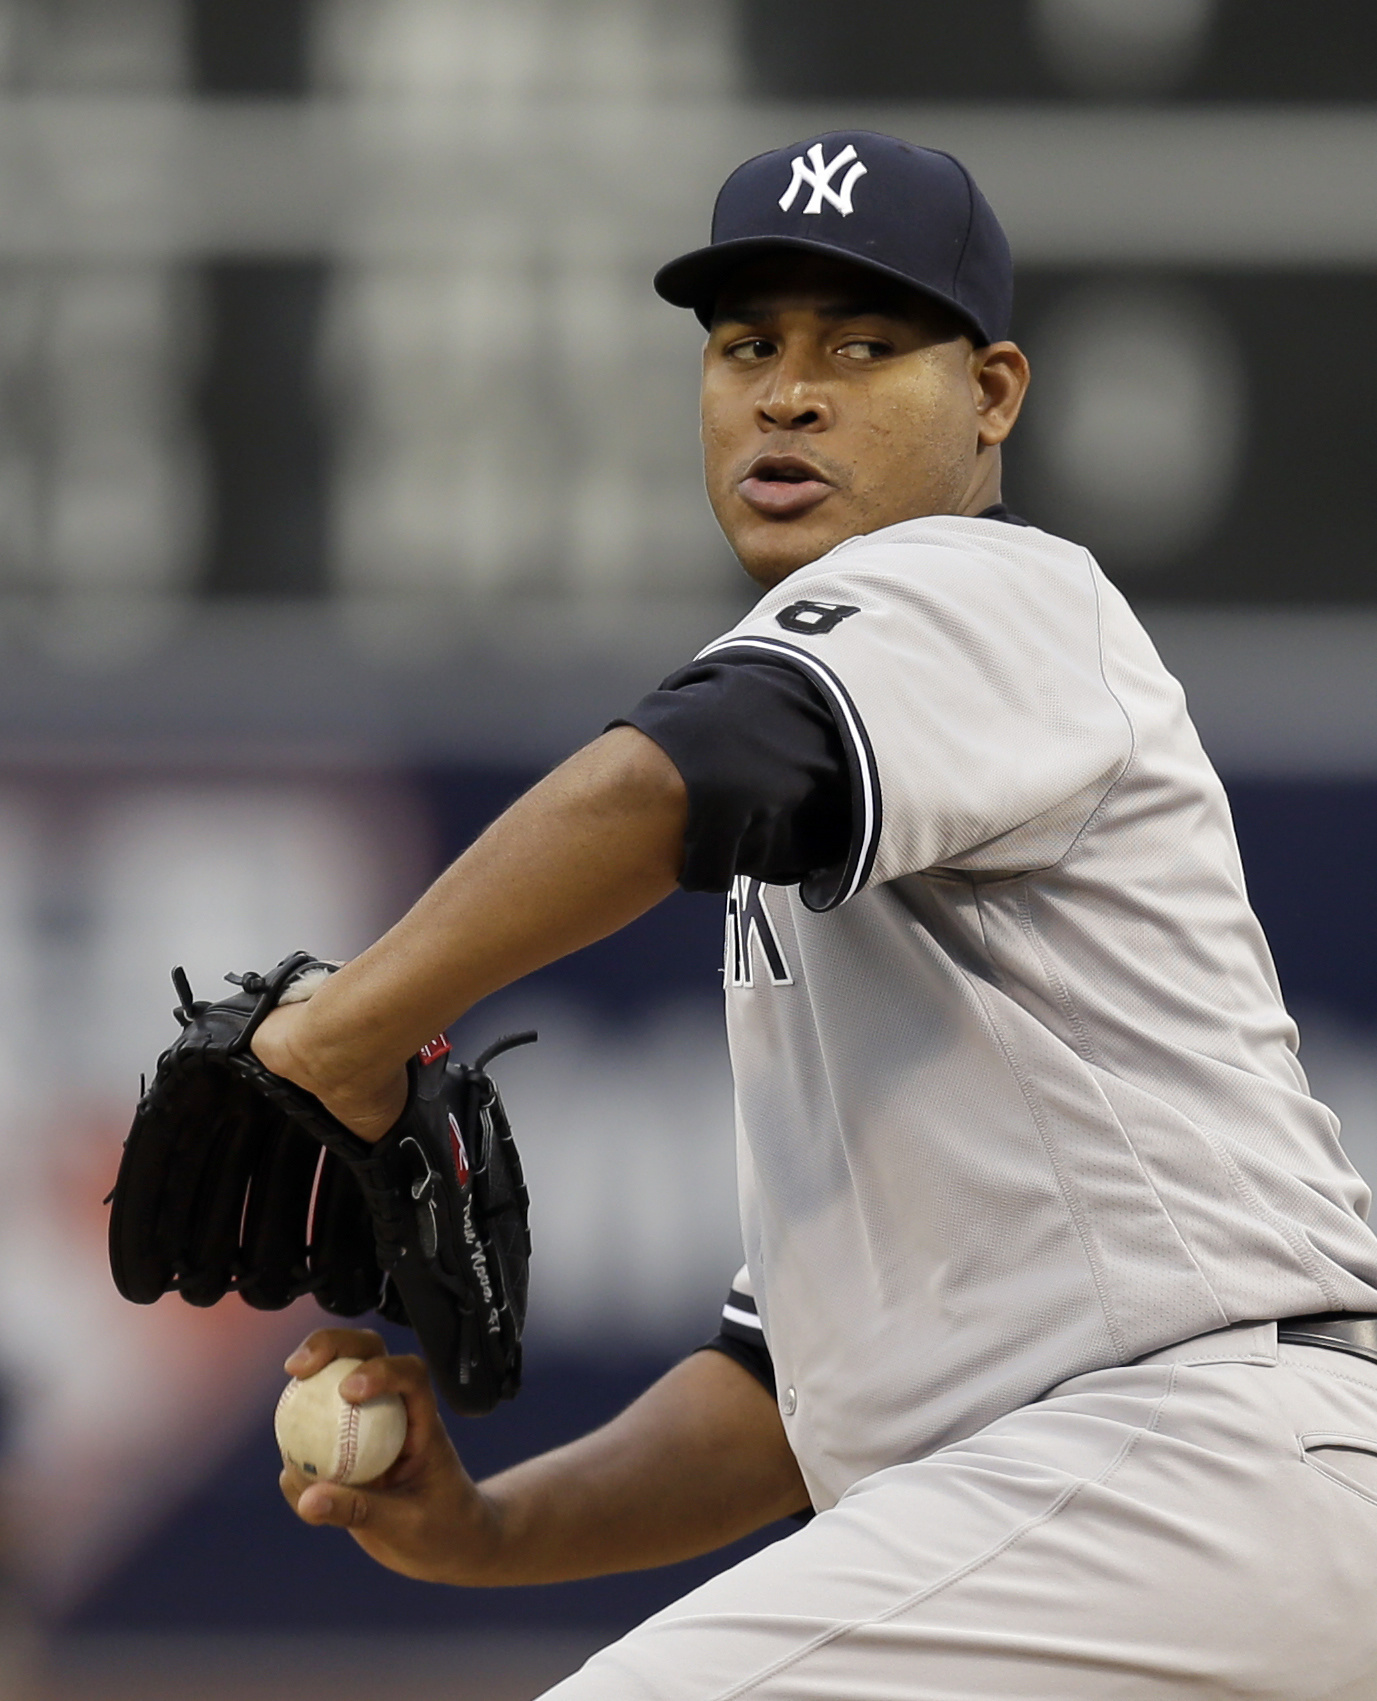 New York Yankees pitcher Ivan Nova works against the Oakland Athletics during the first inning of a baseball game Thursday, May 19, 2016, in Oakland, Calif. (AP Photo/Ben Margot)